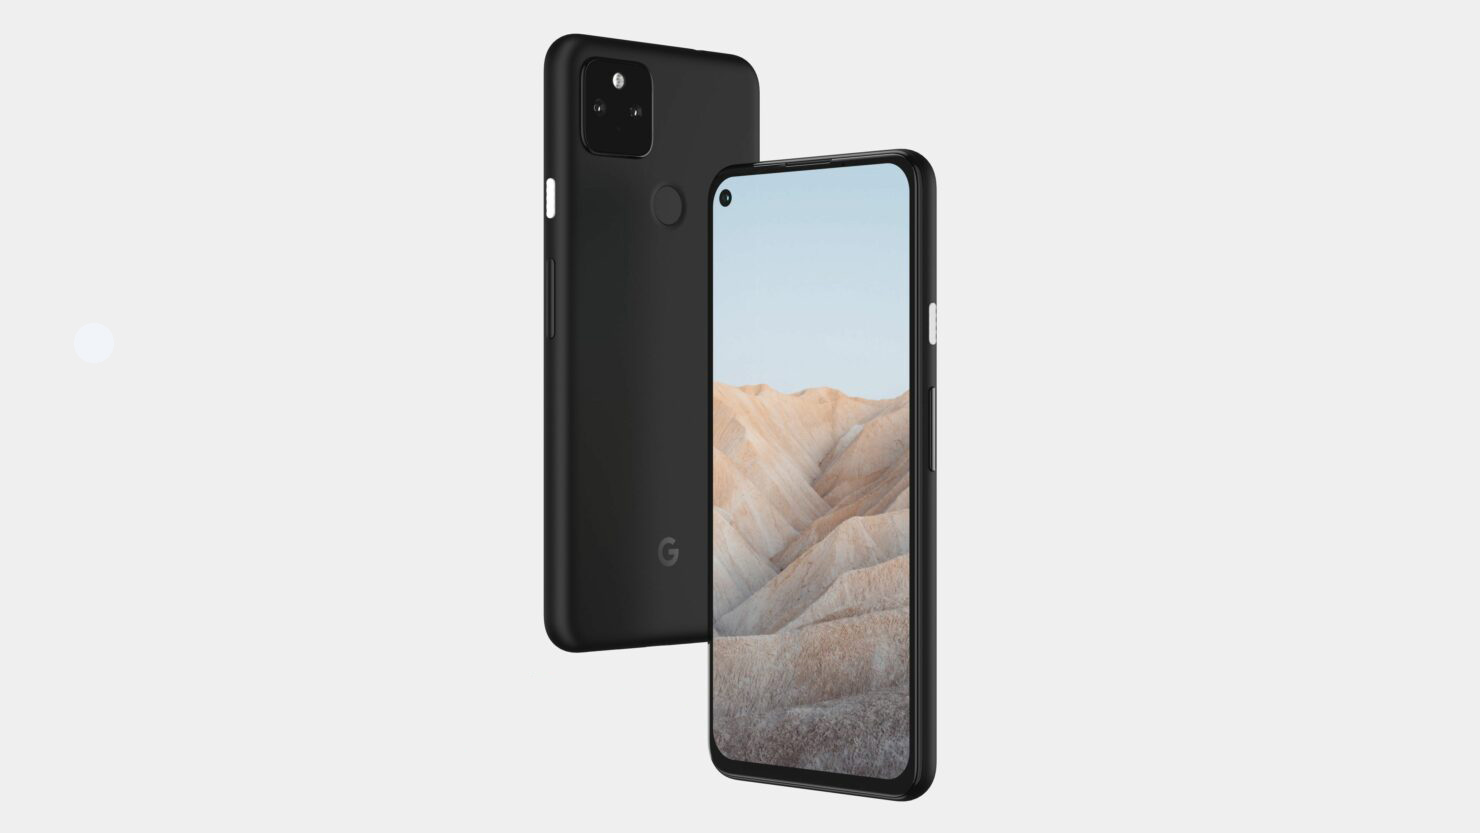 Latest Pixel 5a 5G Ad Highlights the Mid-Ranger's Camera Prowess, While Revealing Its Design